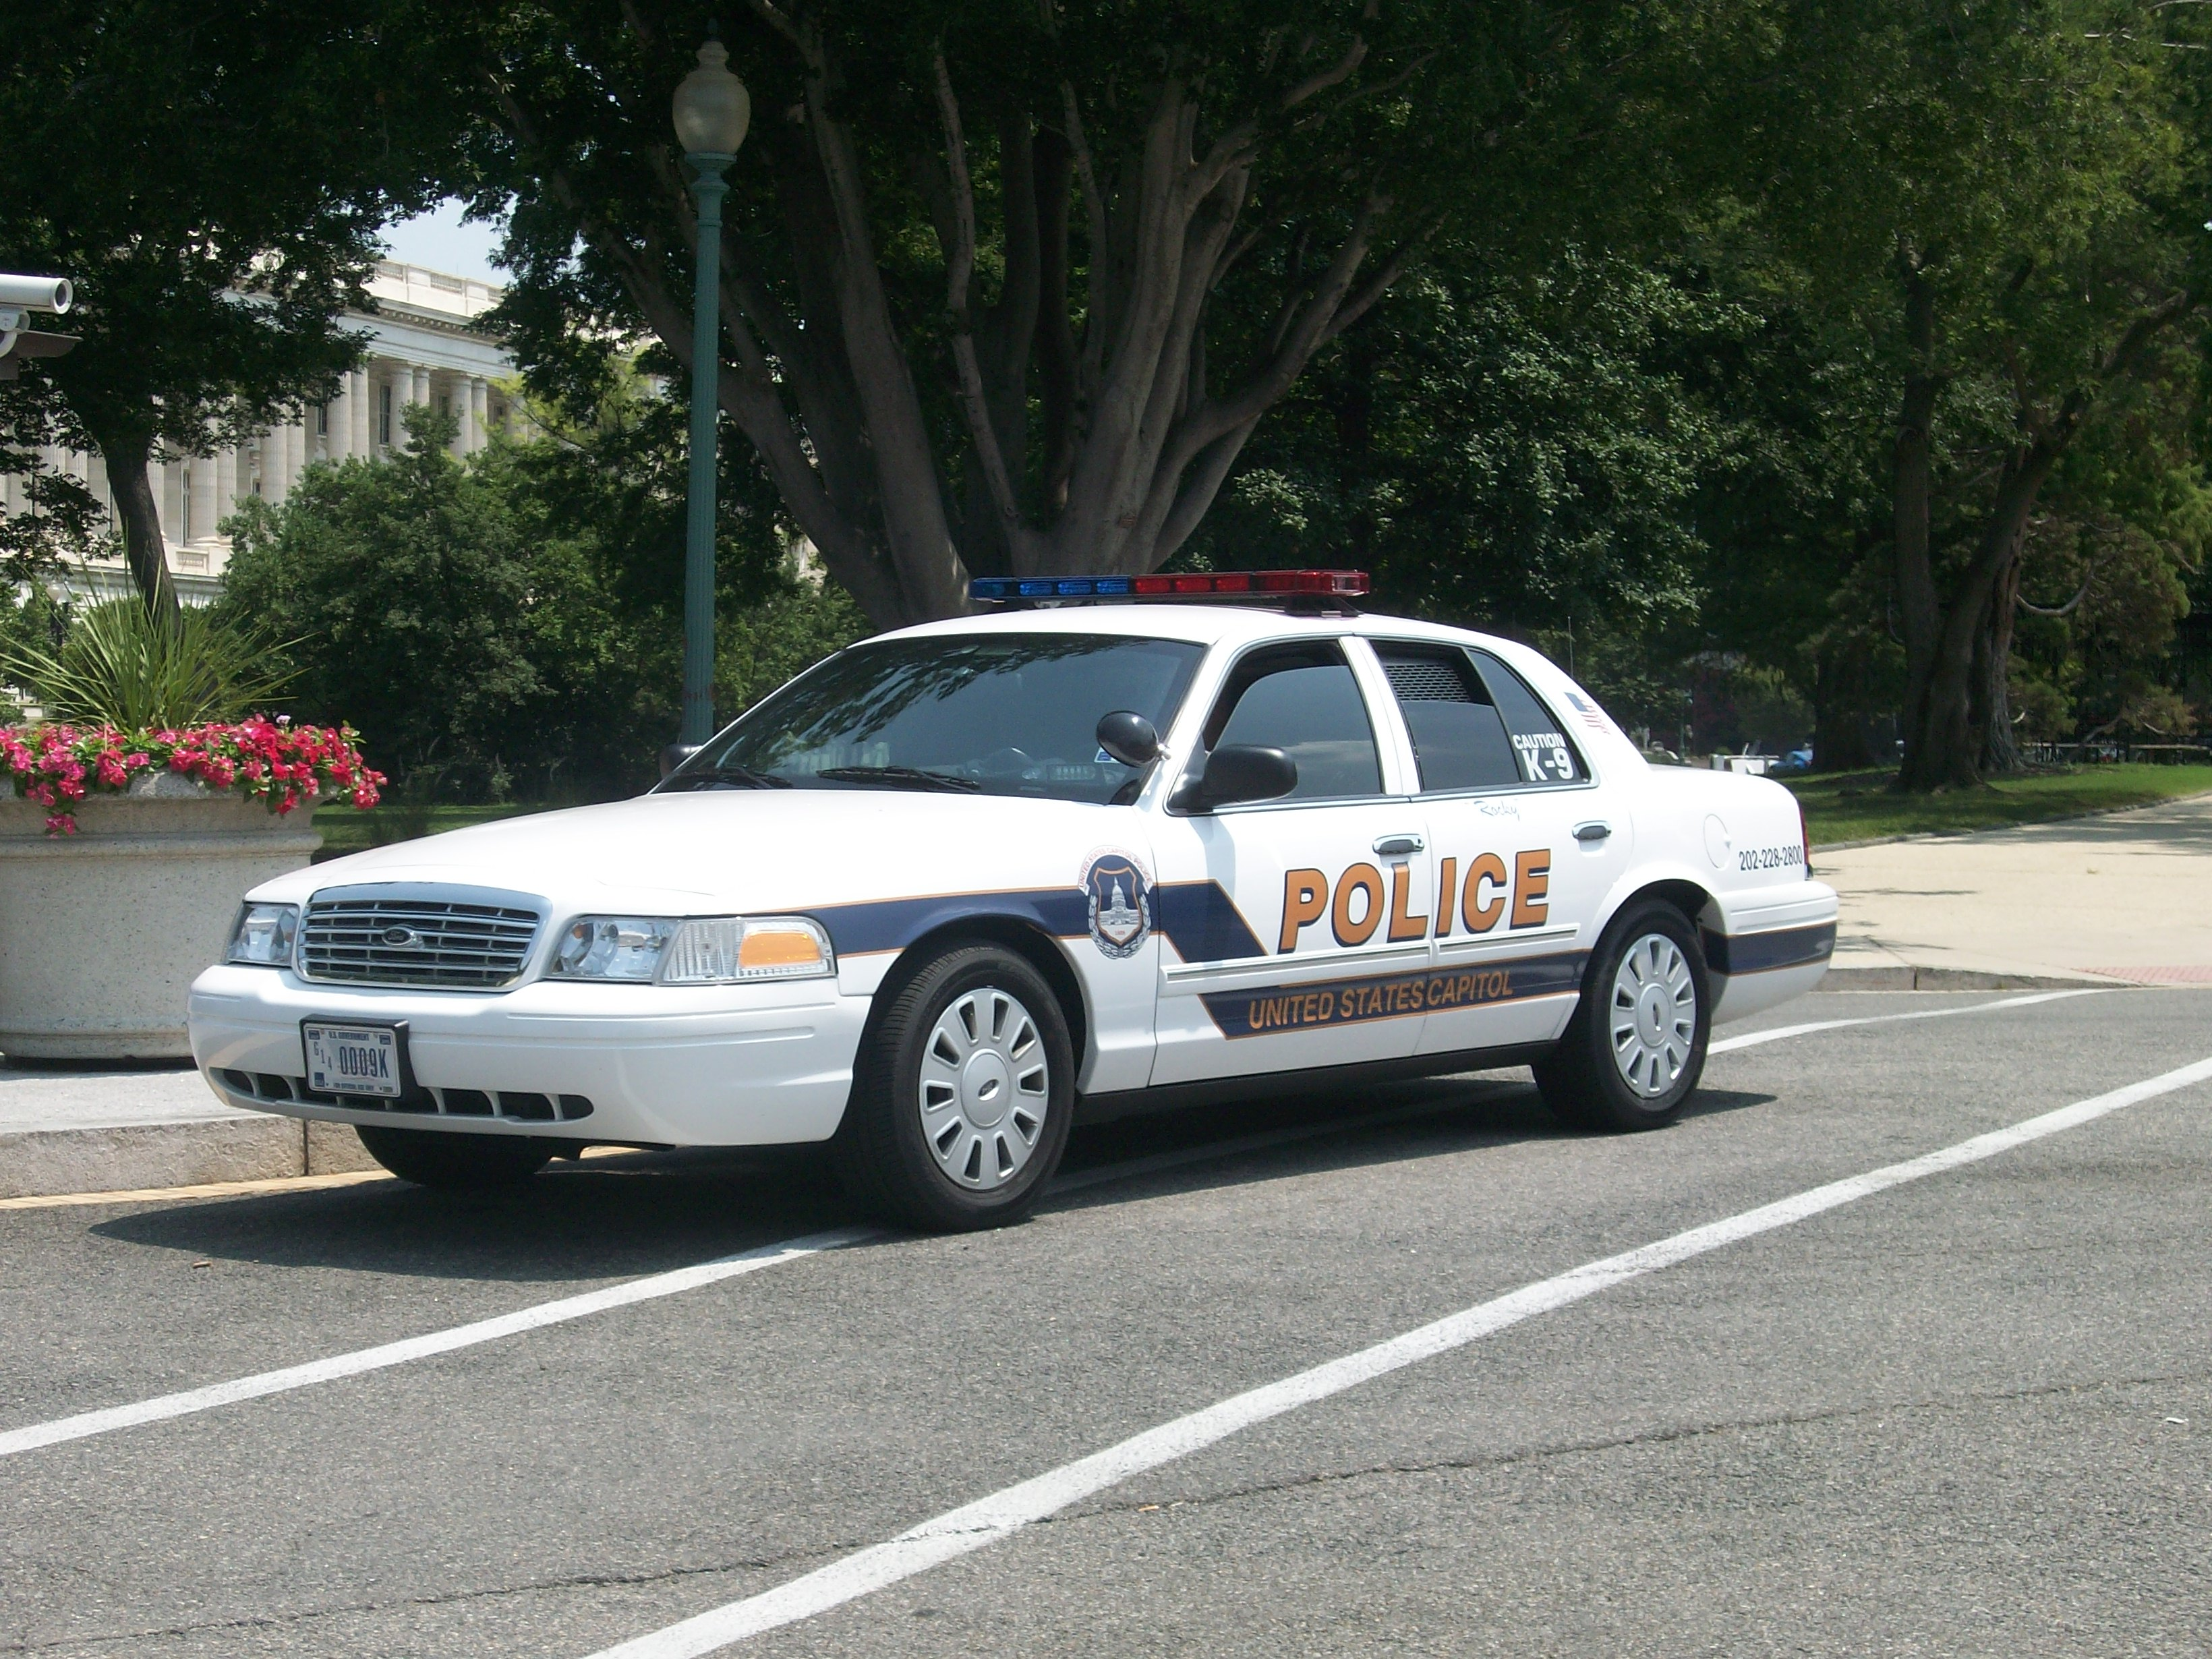 Washington D.C. United States  city images : Description United States Capitol Police Washington D.C. 2011 2